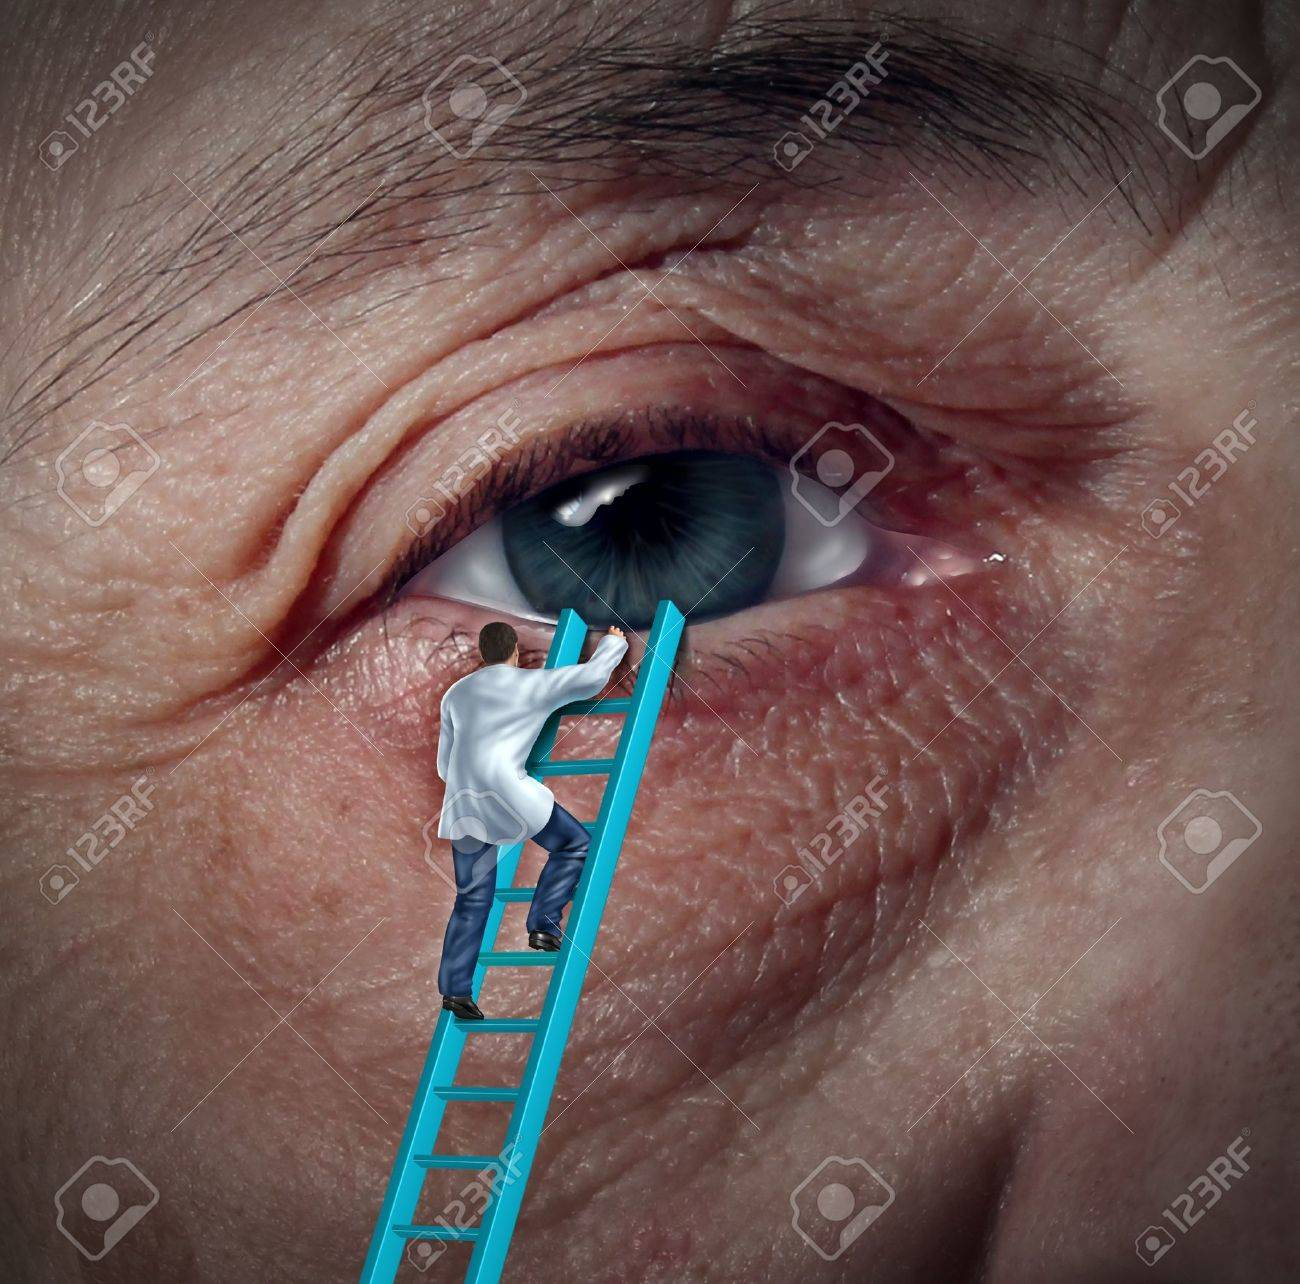 Medical Eye Care concept with an ophthalmologist or optometrist climbing a ladder to givie a diagnosis on an aging elderly patient that may have vision problems due to cataracts or other ocular diseases Stock Photo - 20688448